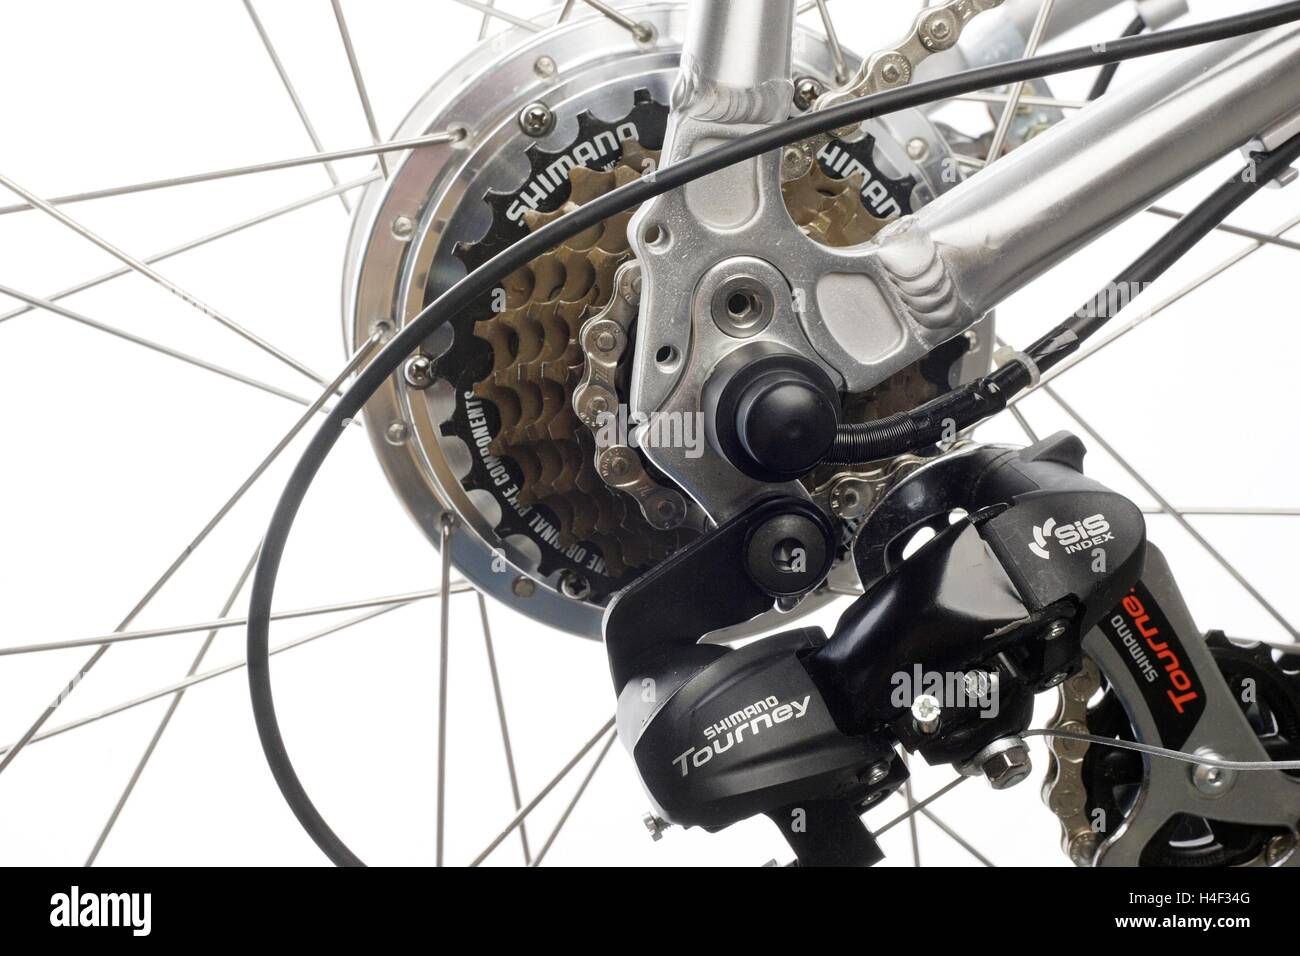 derailleur gears on a  bicycle, clean white background - Stock Image